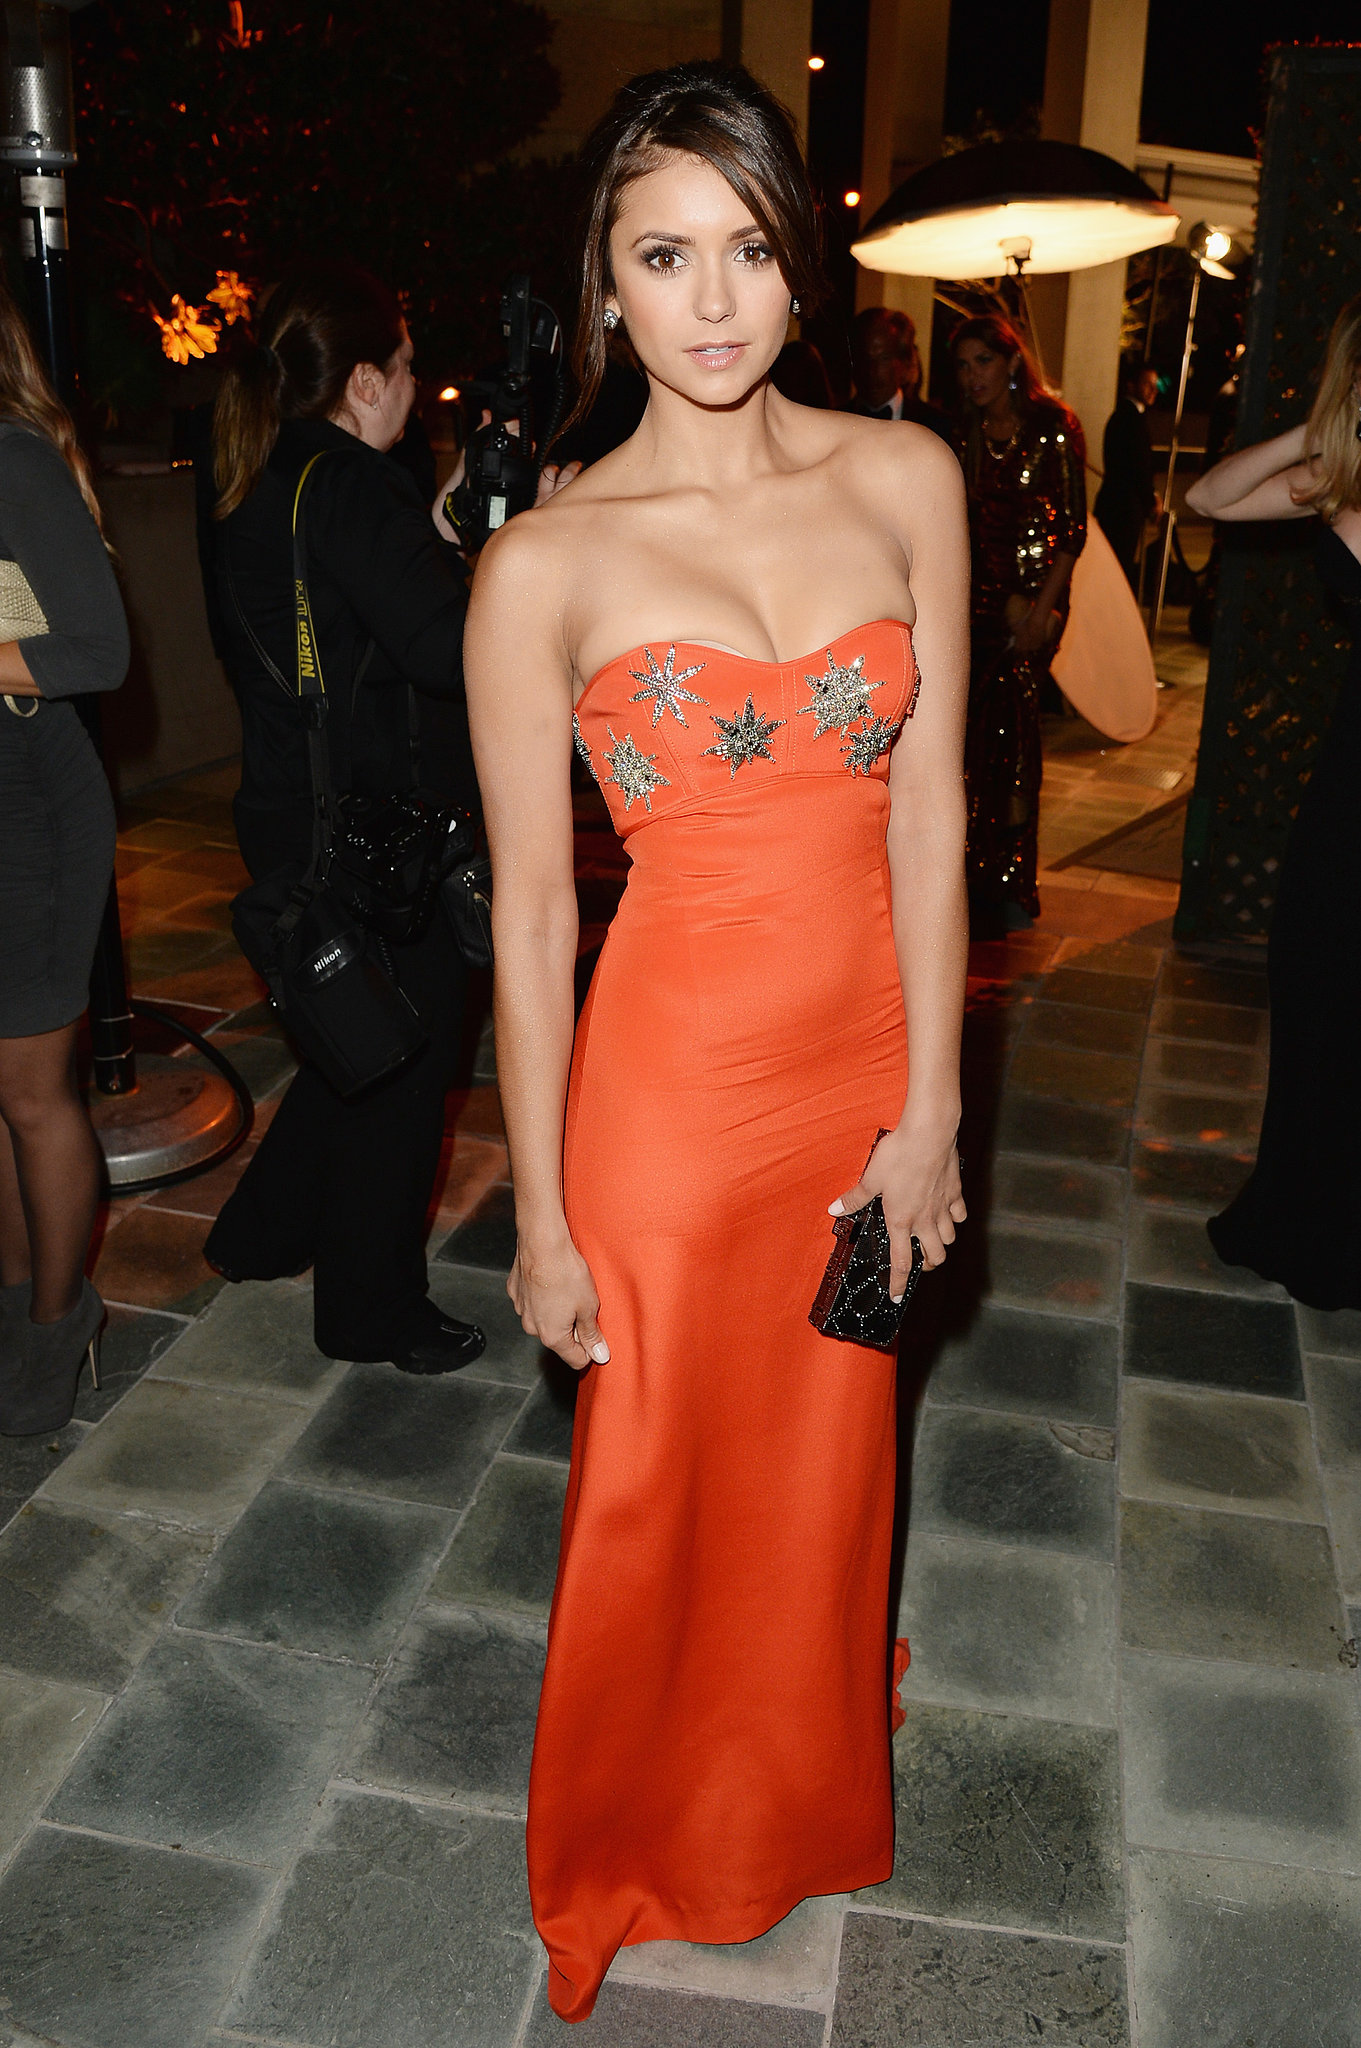 On Saturday, Nina Dobrev wore an orange Pucci gown to the Art of Elysium event.